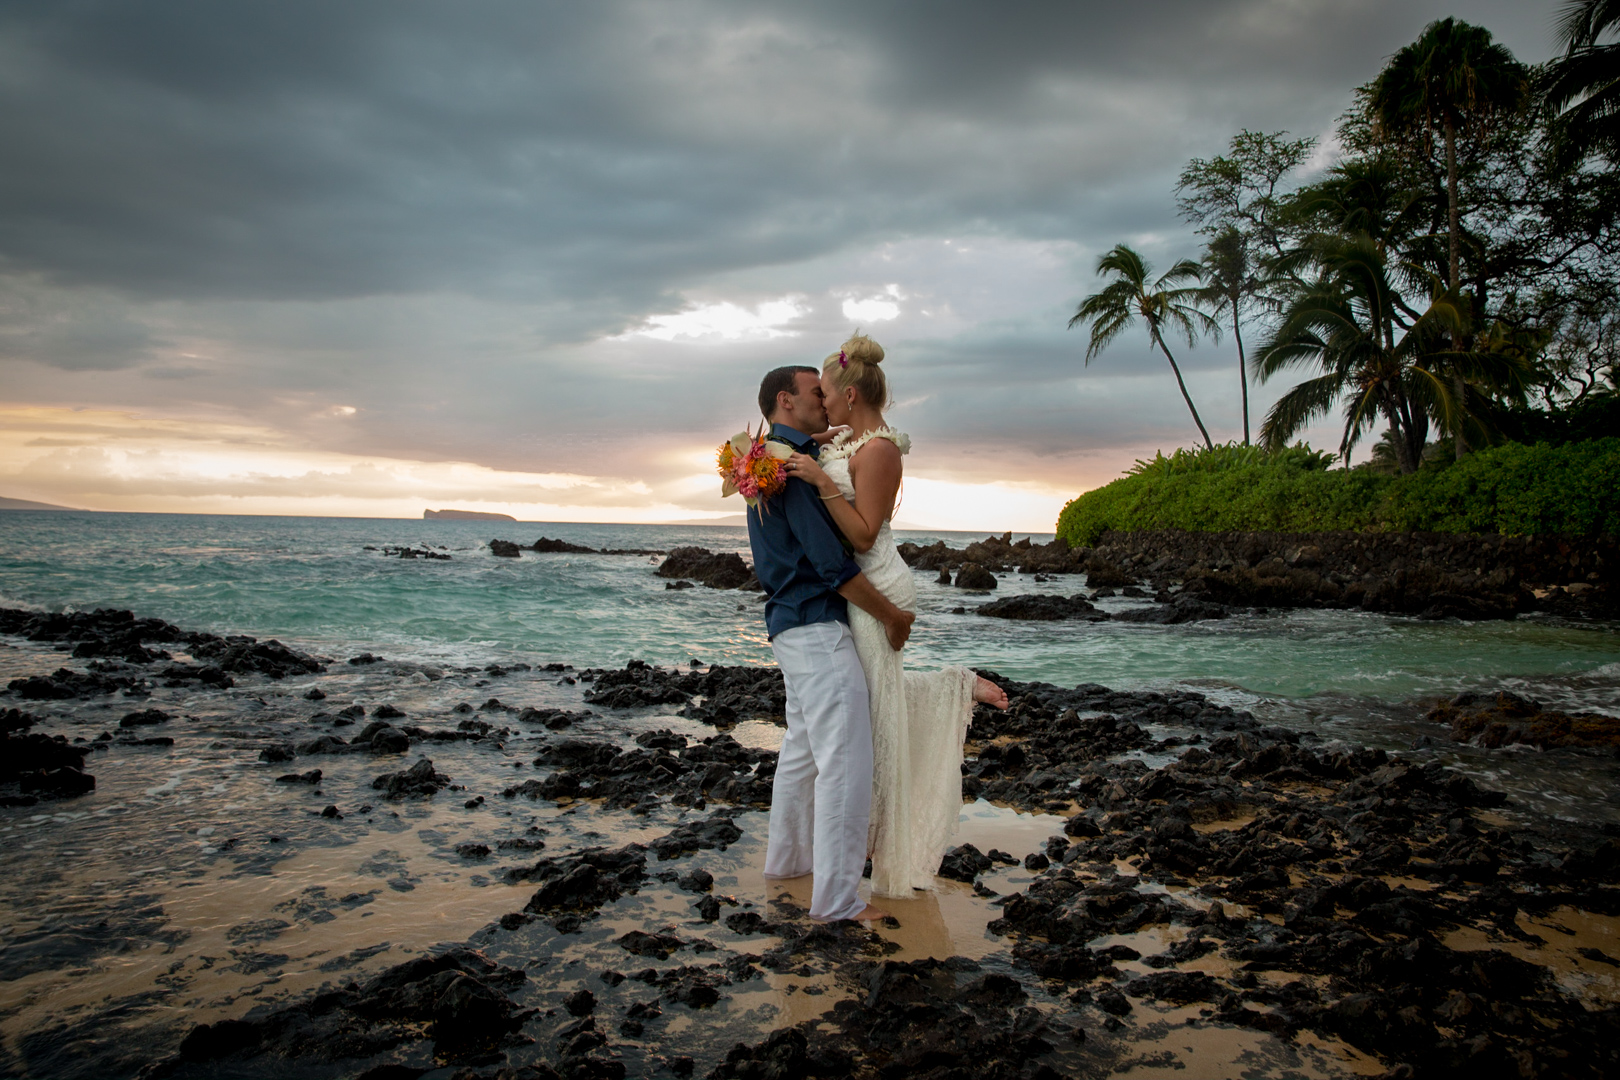 Thank you so much!! We're just so in love with them all. Thank you for being there and for all you did. I could not dream up better photos - or photographer. We look forward to coming back someday,  would love to stay in touch for photos down the road too!! Much Aloha,  -Jess and Colin